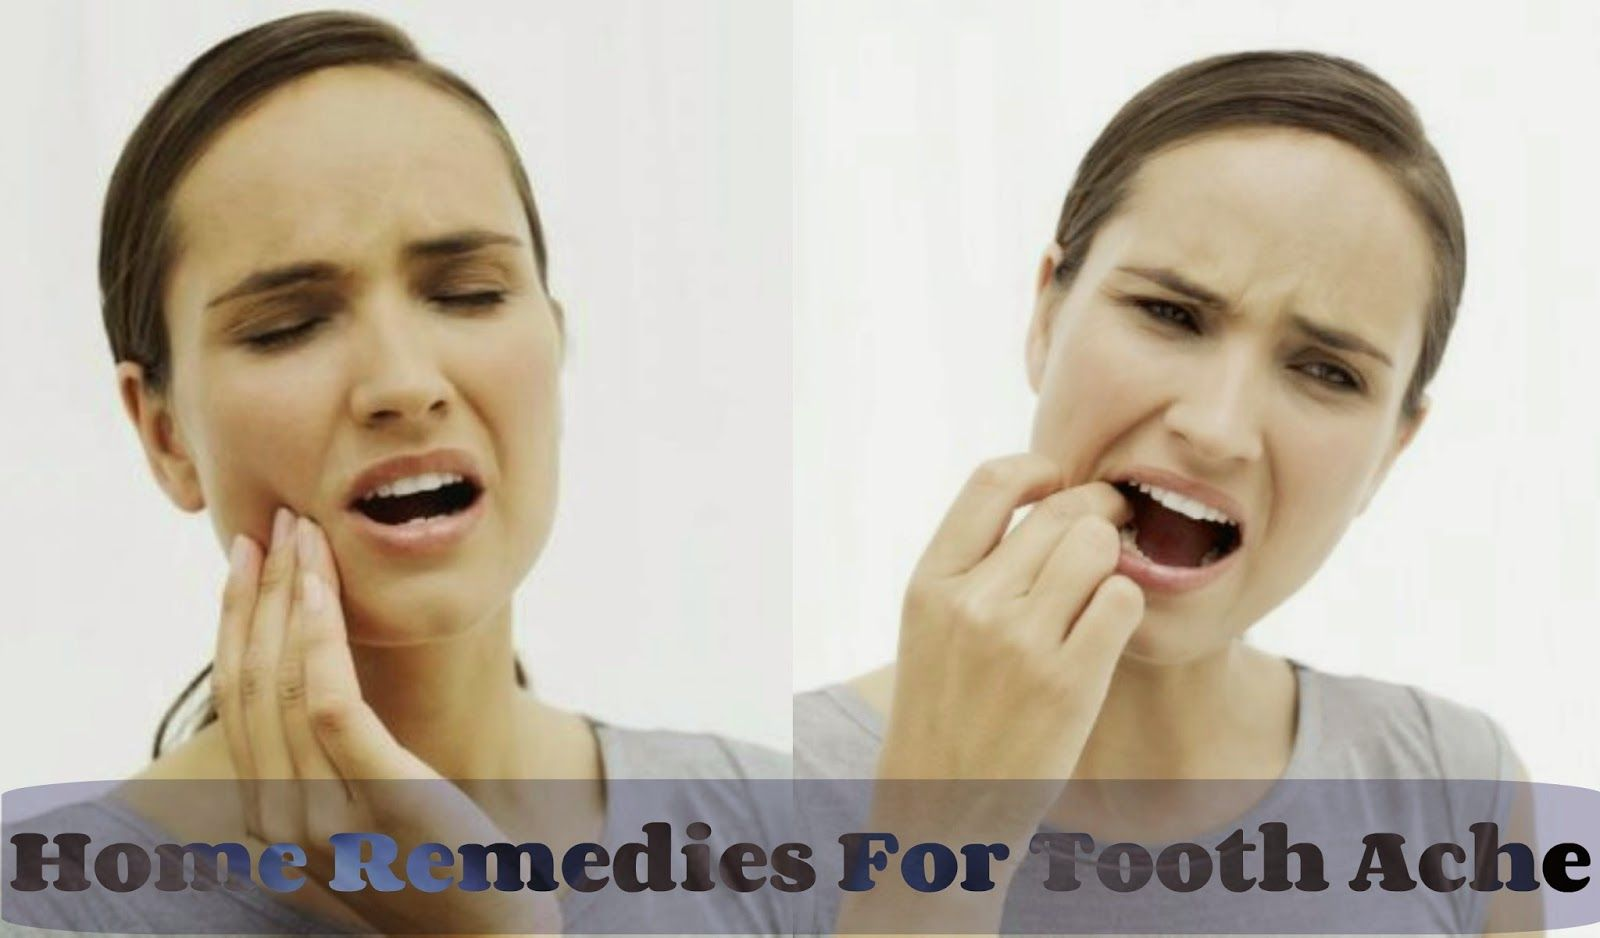 Home Remedies For Tooth Ache  Fitspo  Pinterest  Teeth ache